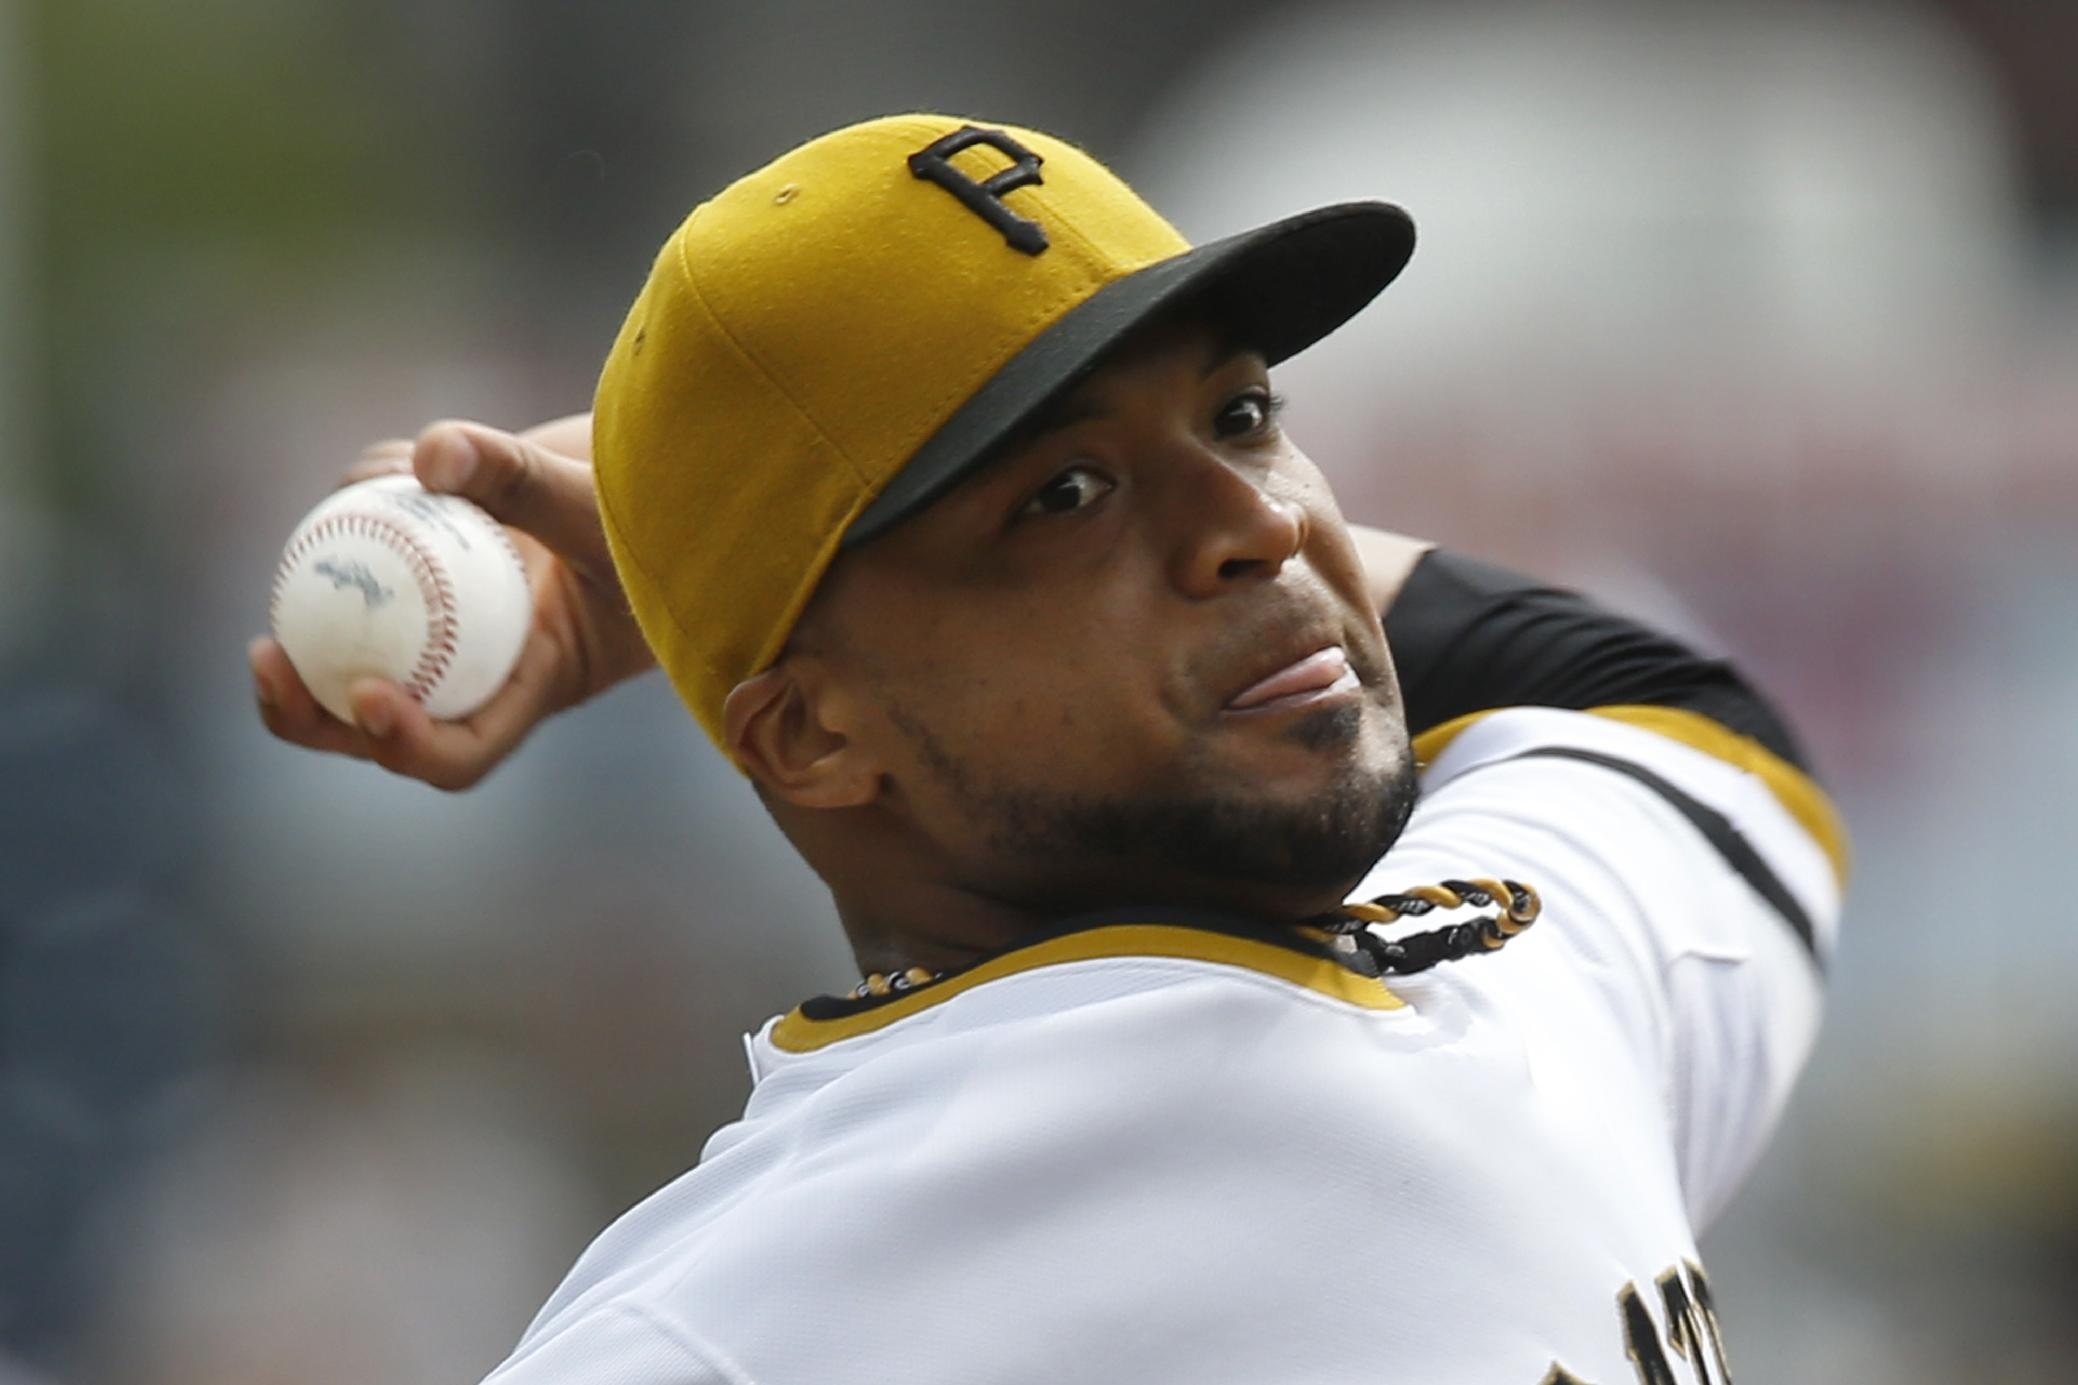 Pittsburgh Pirates starting pitcher Francisco Liriano throws against the Chicago Cubs in the first inning of a baseball game on Sunday, Sept. 15, 2013, in Pittsburgh